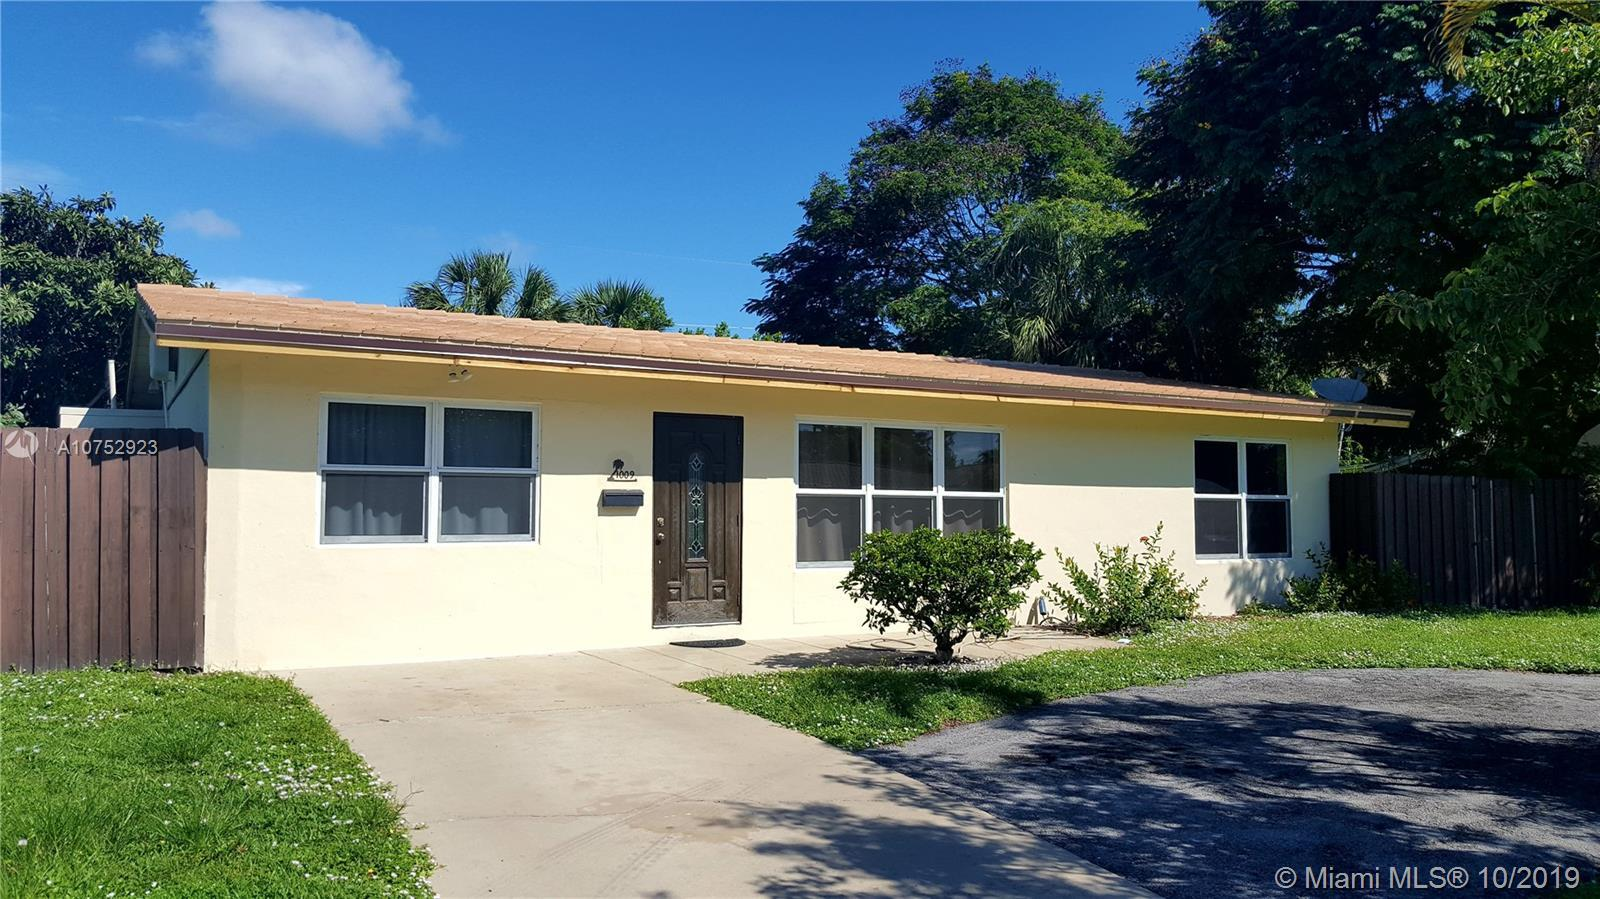 Live in the Heart of East Deerfield Beach* THE COVE Neighborhood* Super Location within Walking Dist